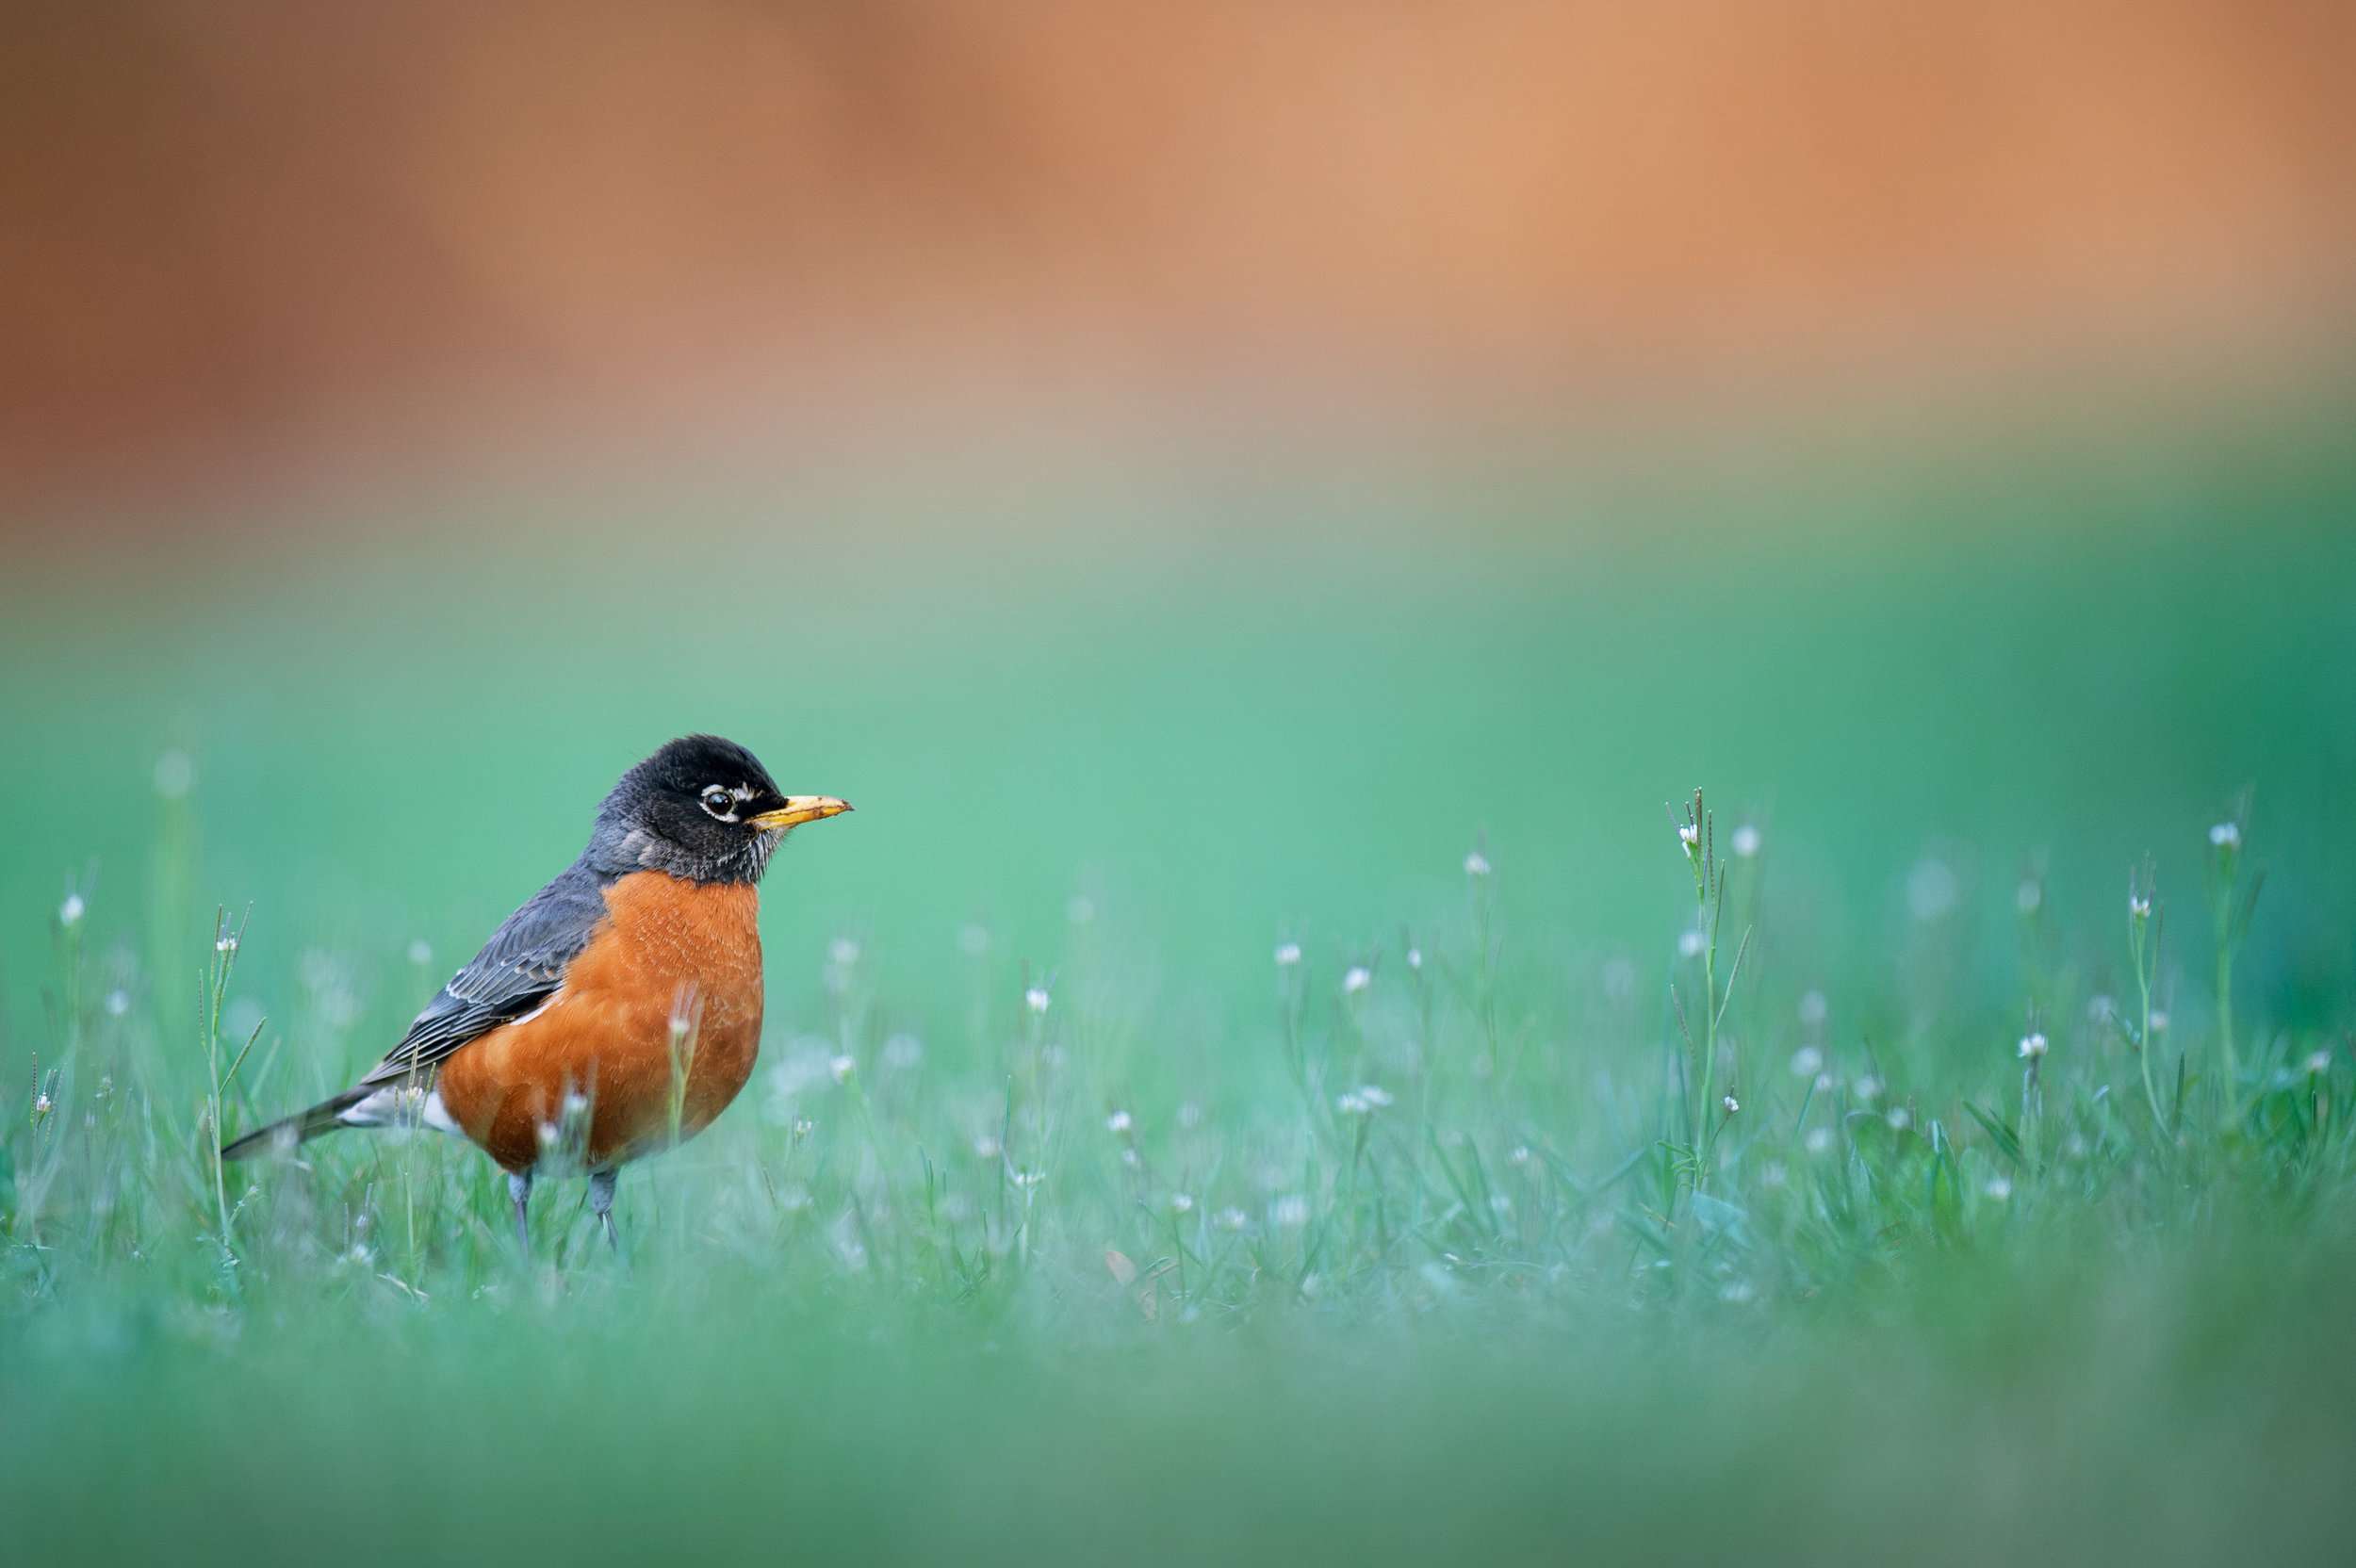 Another American Robin stands in the fresh green grass surrounded by tiny white flowers.